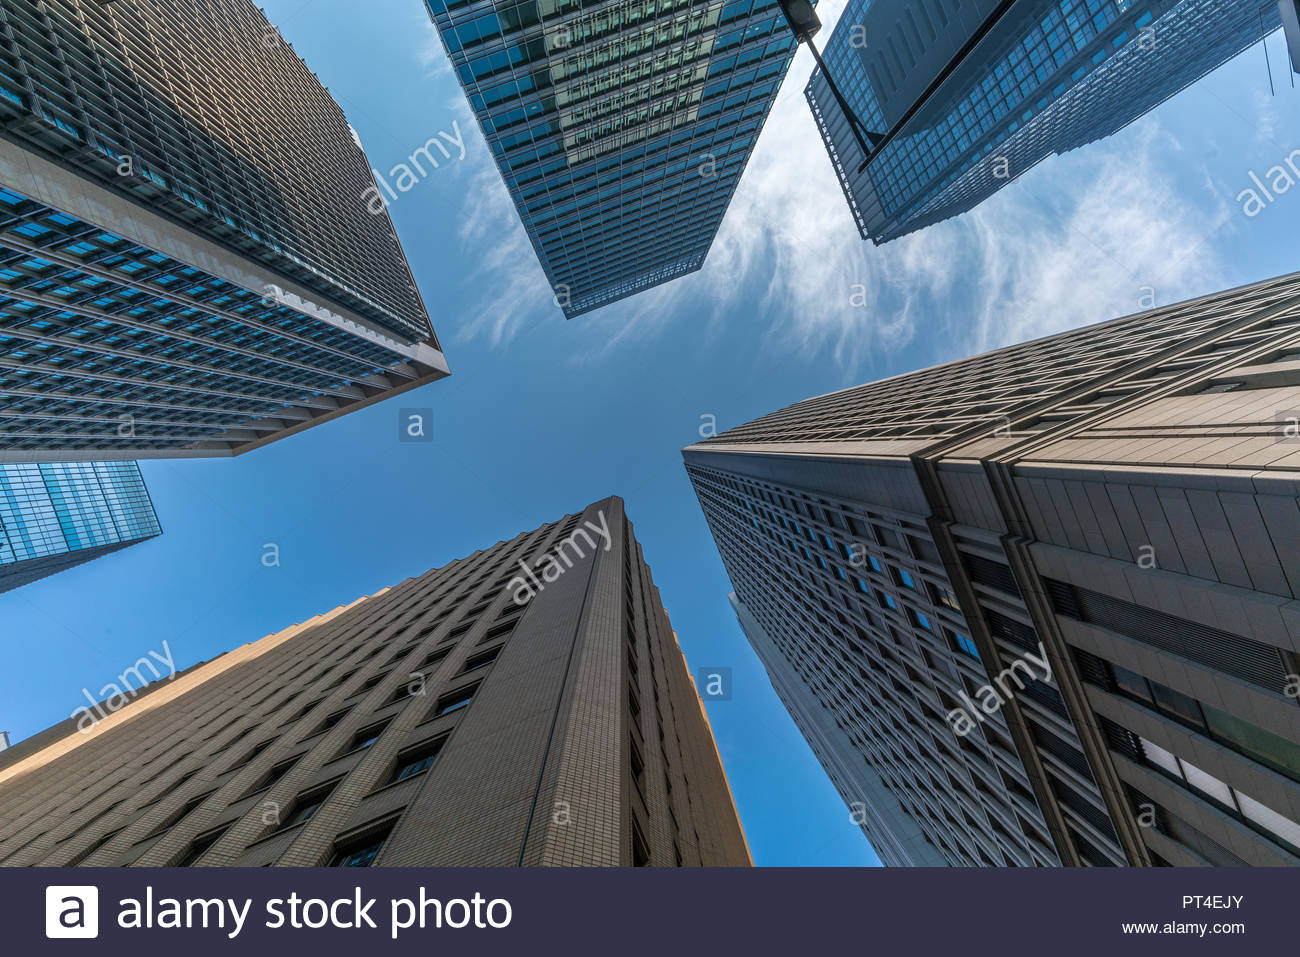 Tokyo, August 8, 2018. Groung level view of skyscraper buildings scenery. Marunouchi district located in Chiyoda Ward - Stock Image